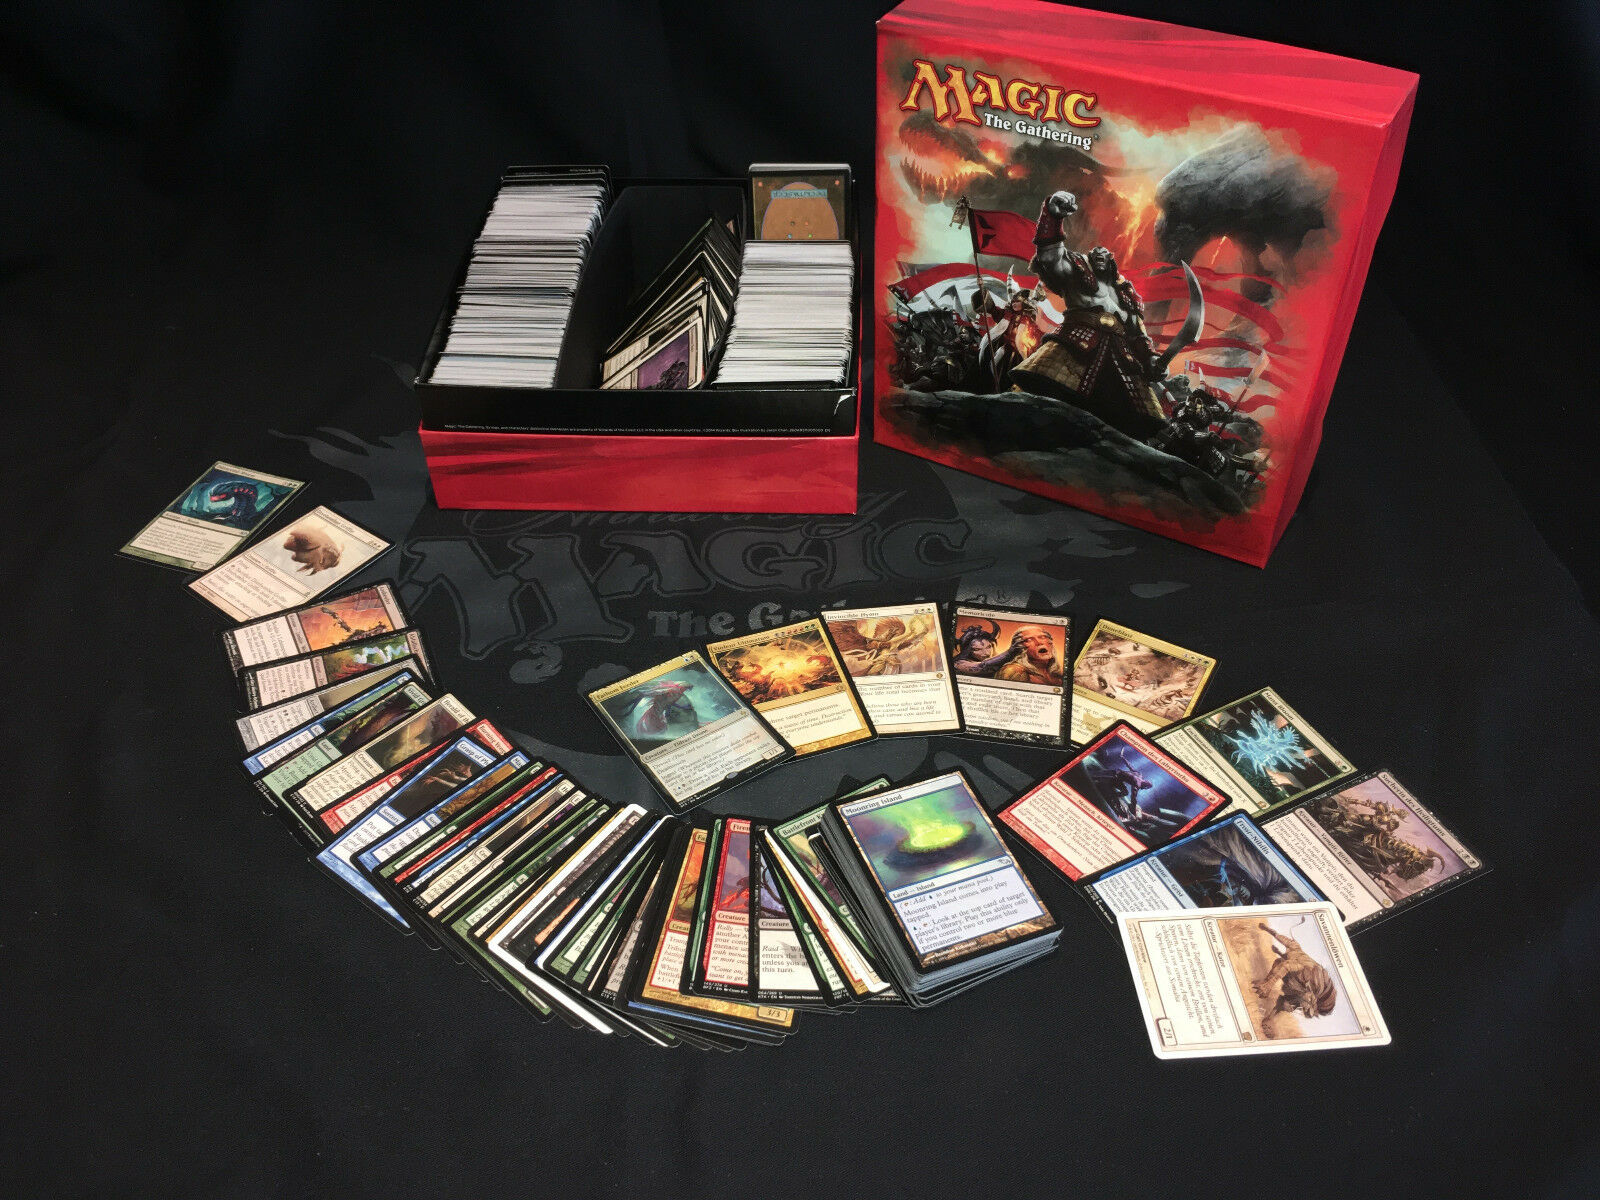 MAGIC THE GATHERING *Nice Price* 1000 Karten inkl. Uncommons + 10 RARES